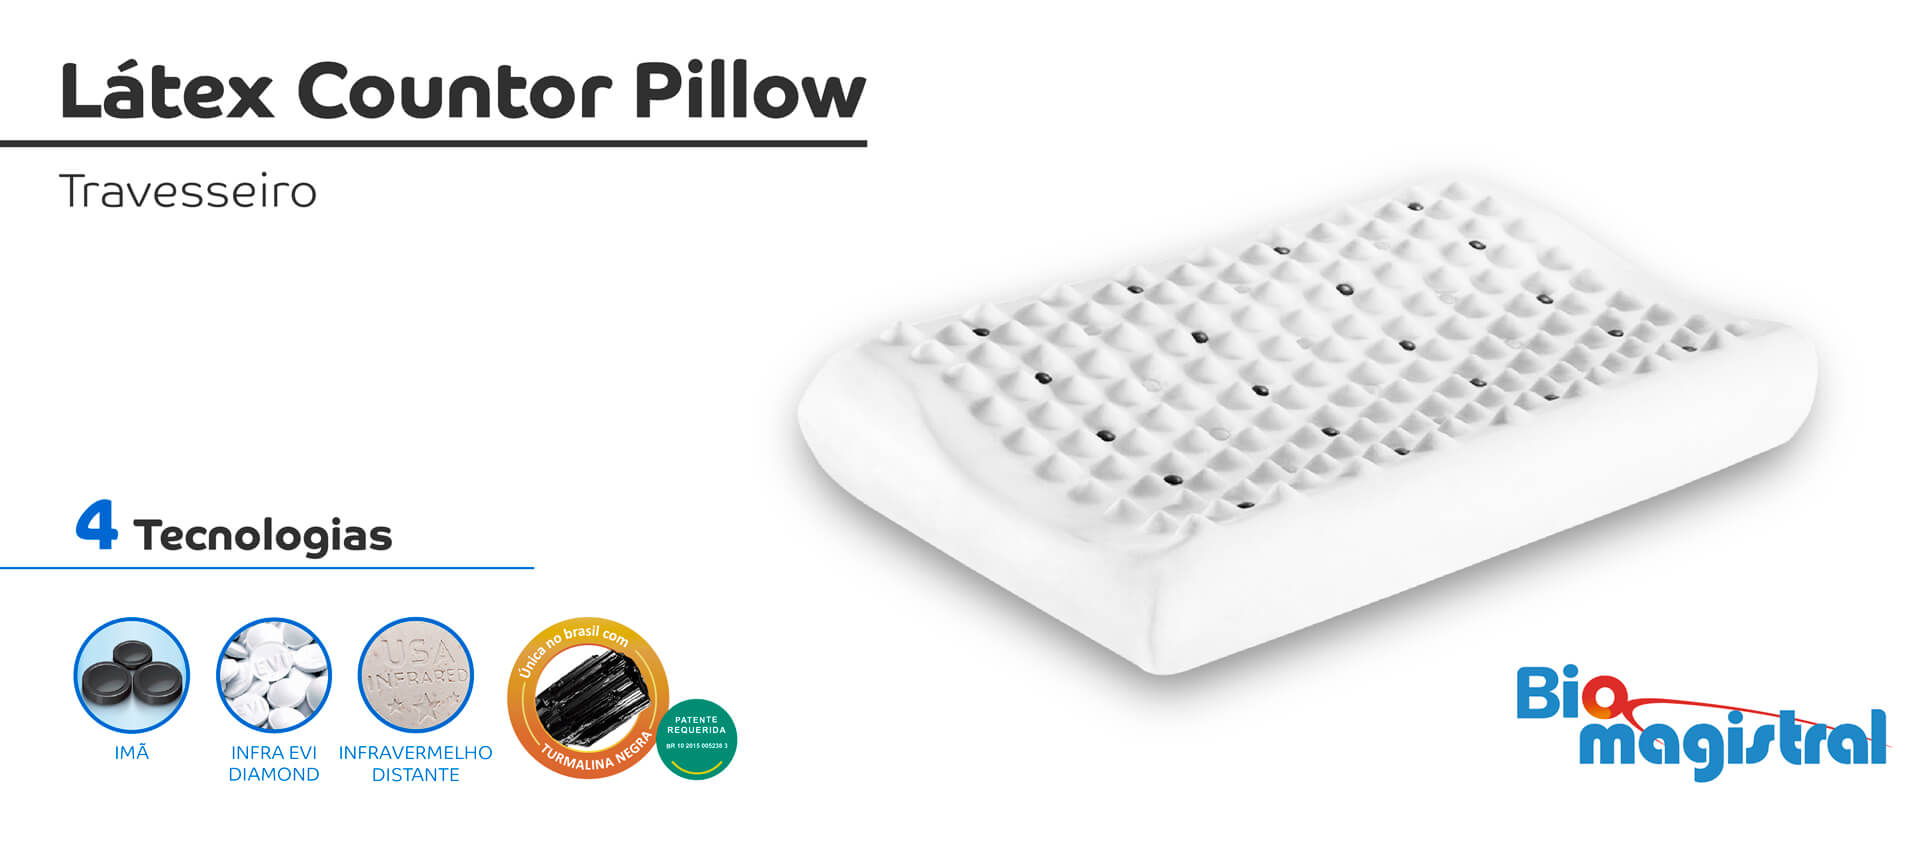 Látex Countor Pillow